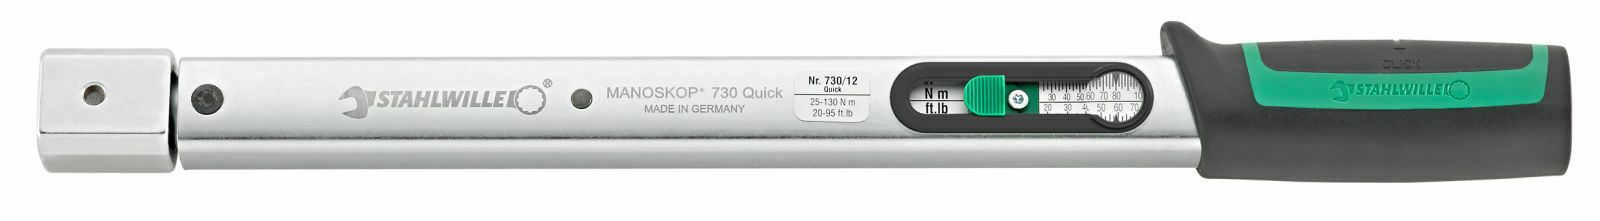 Stahlwille TORQUE WRENCH WITH CUT-OUT 50184012